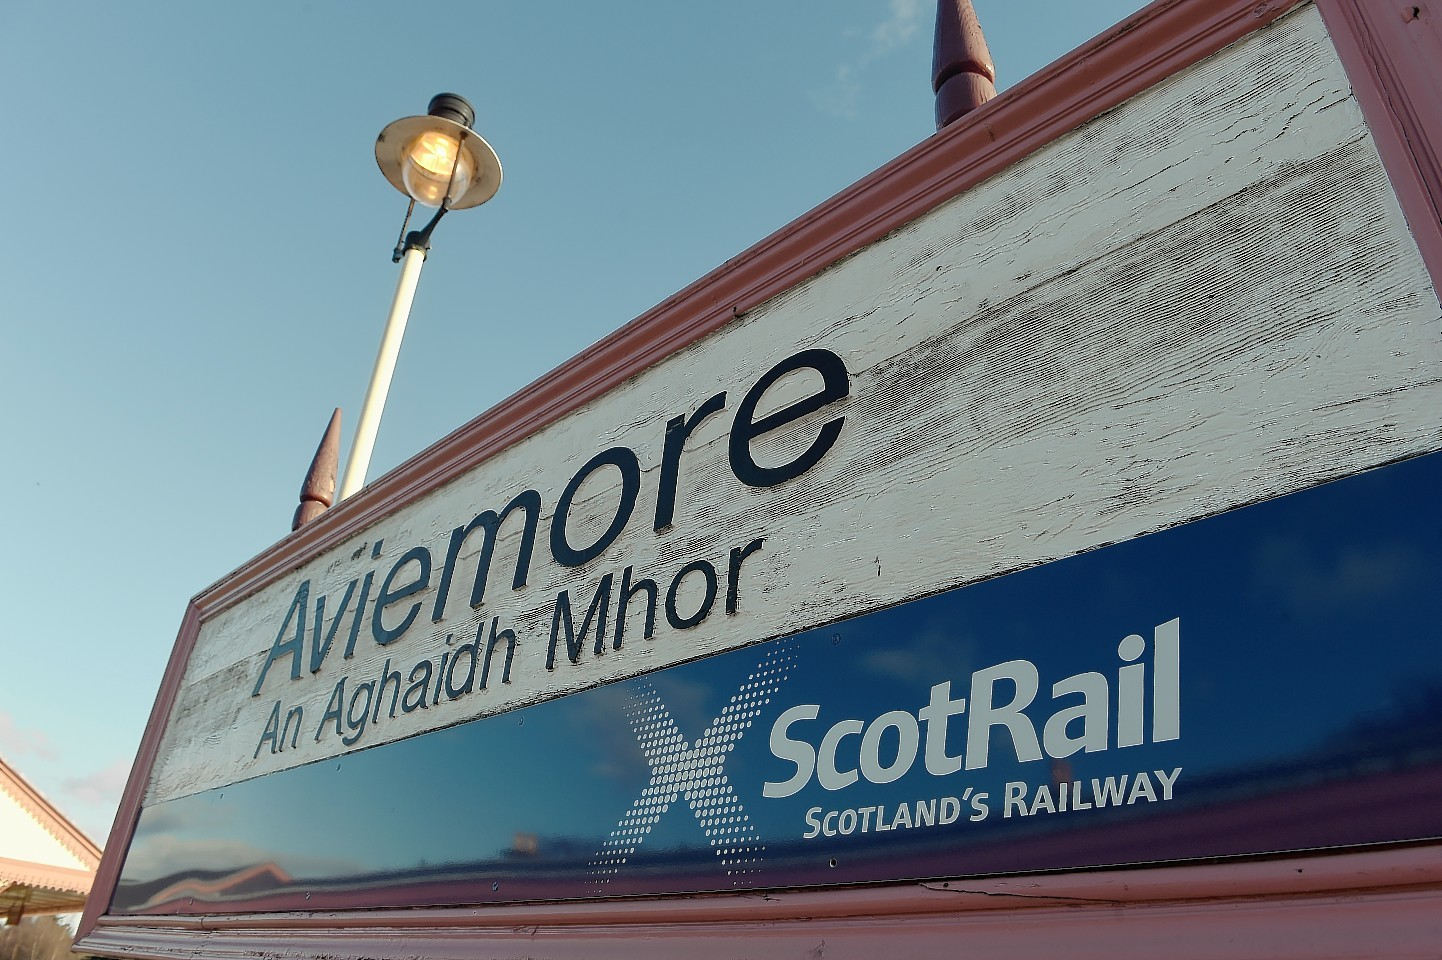 The drugs were stashed at Aviemore Railway Station